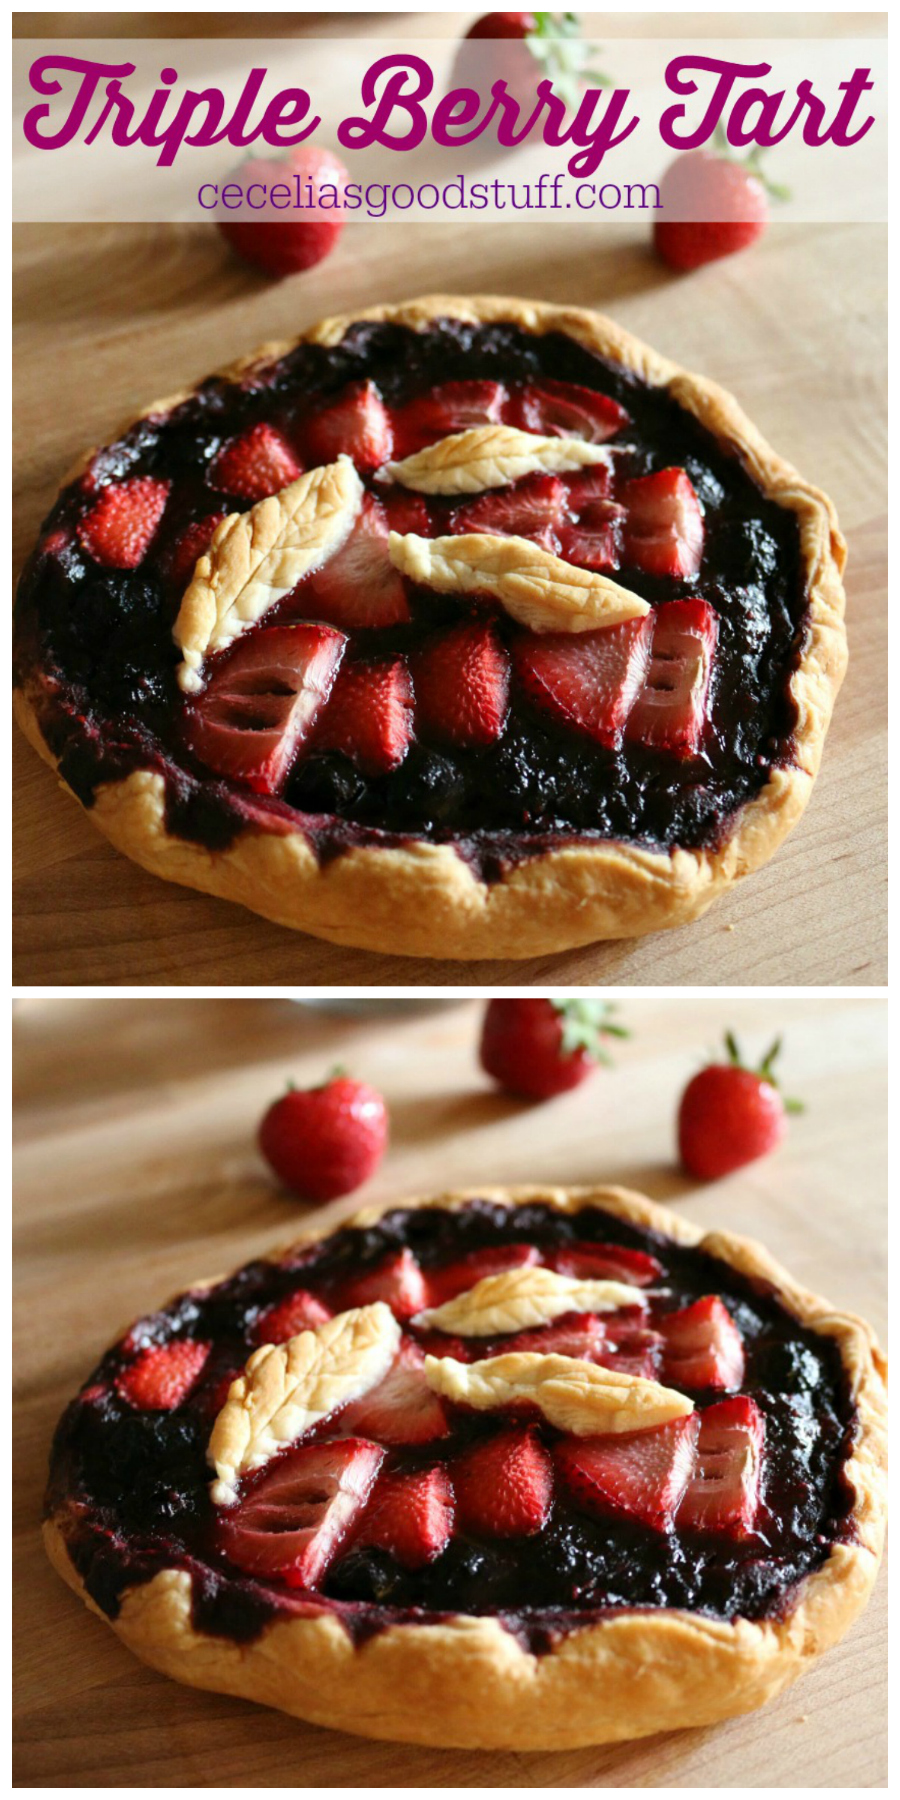 Triple Berry Tart Recipe CeceliasGoodStuff.com Good Food for Good People